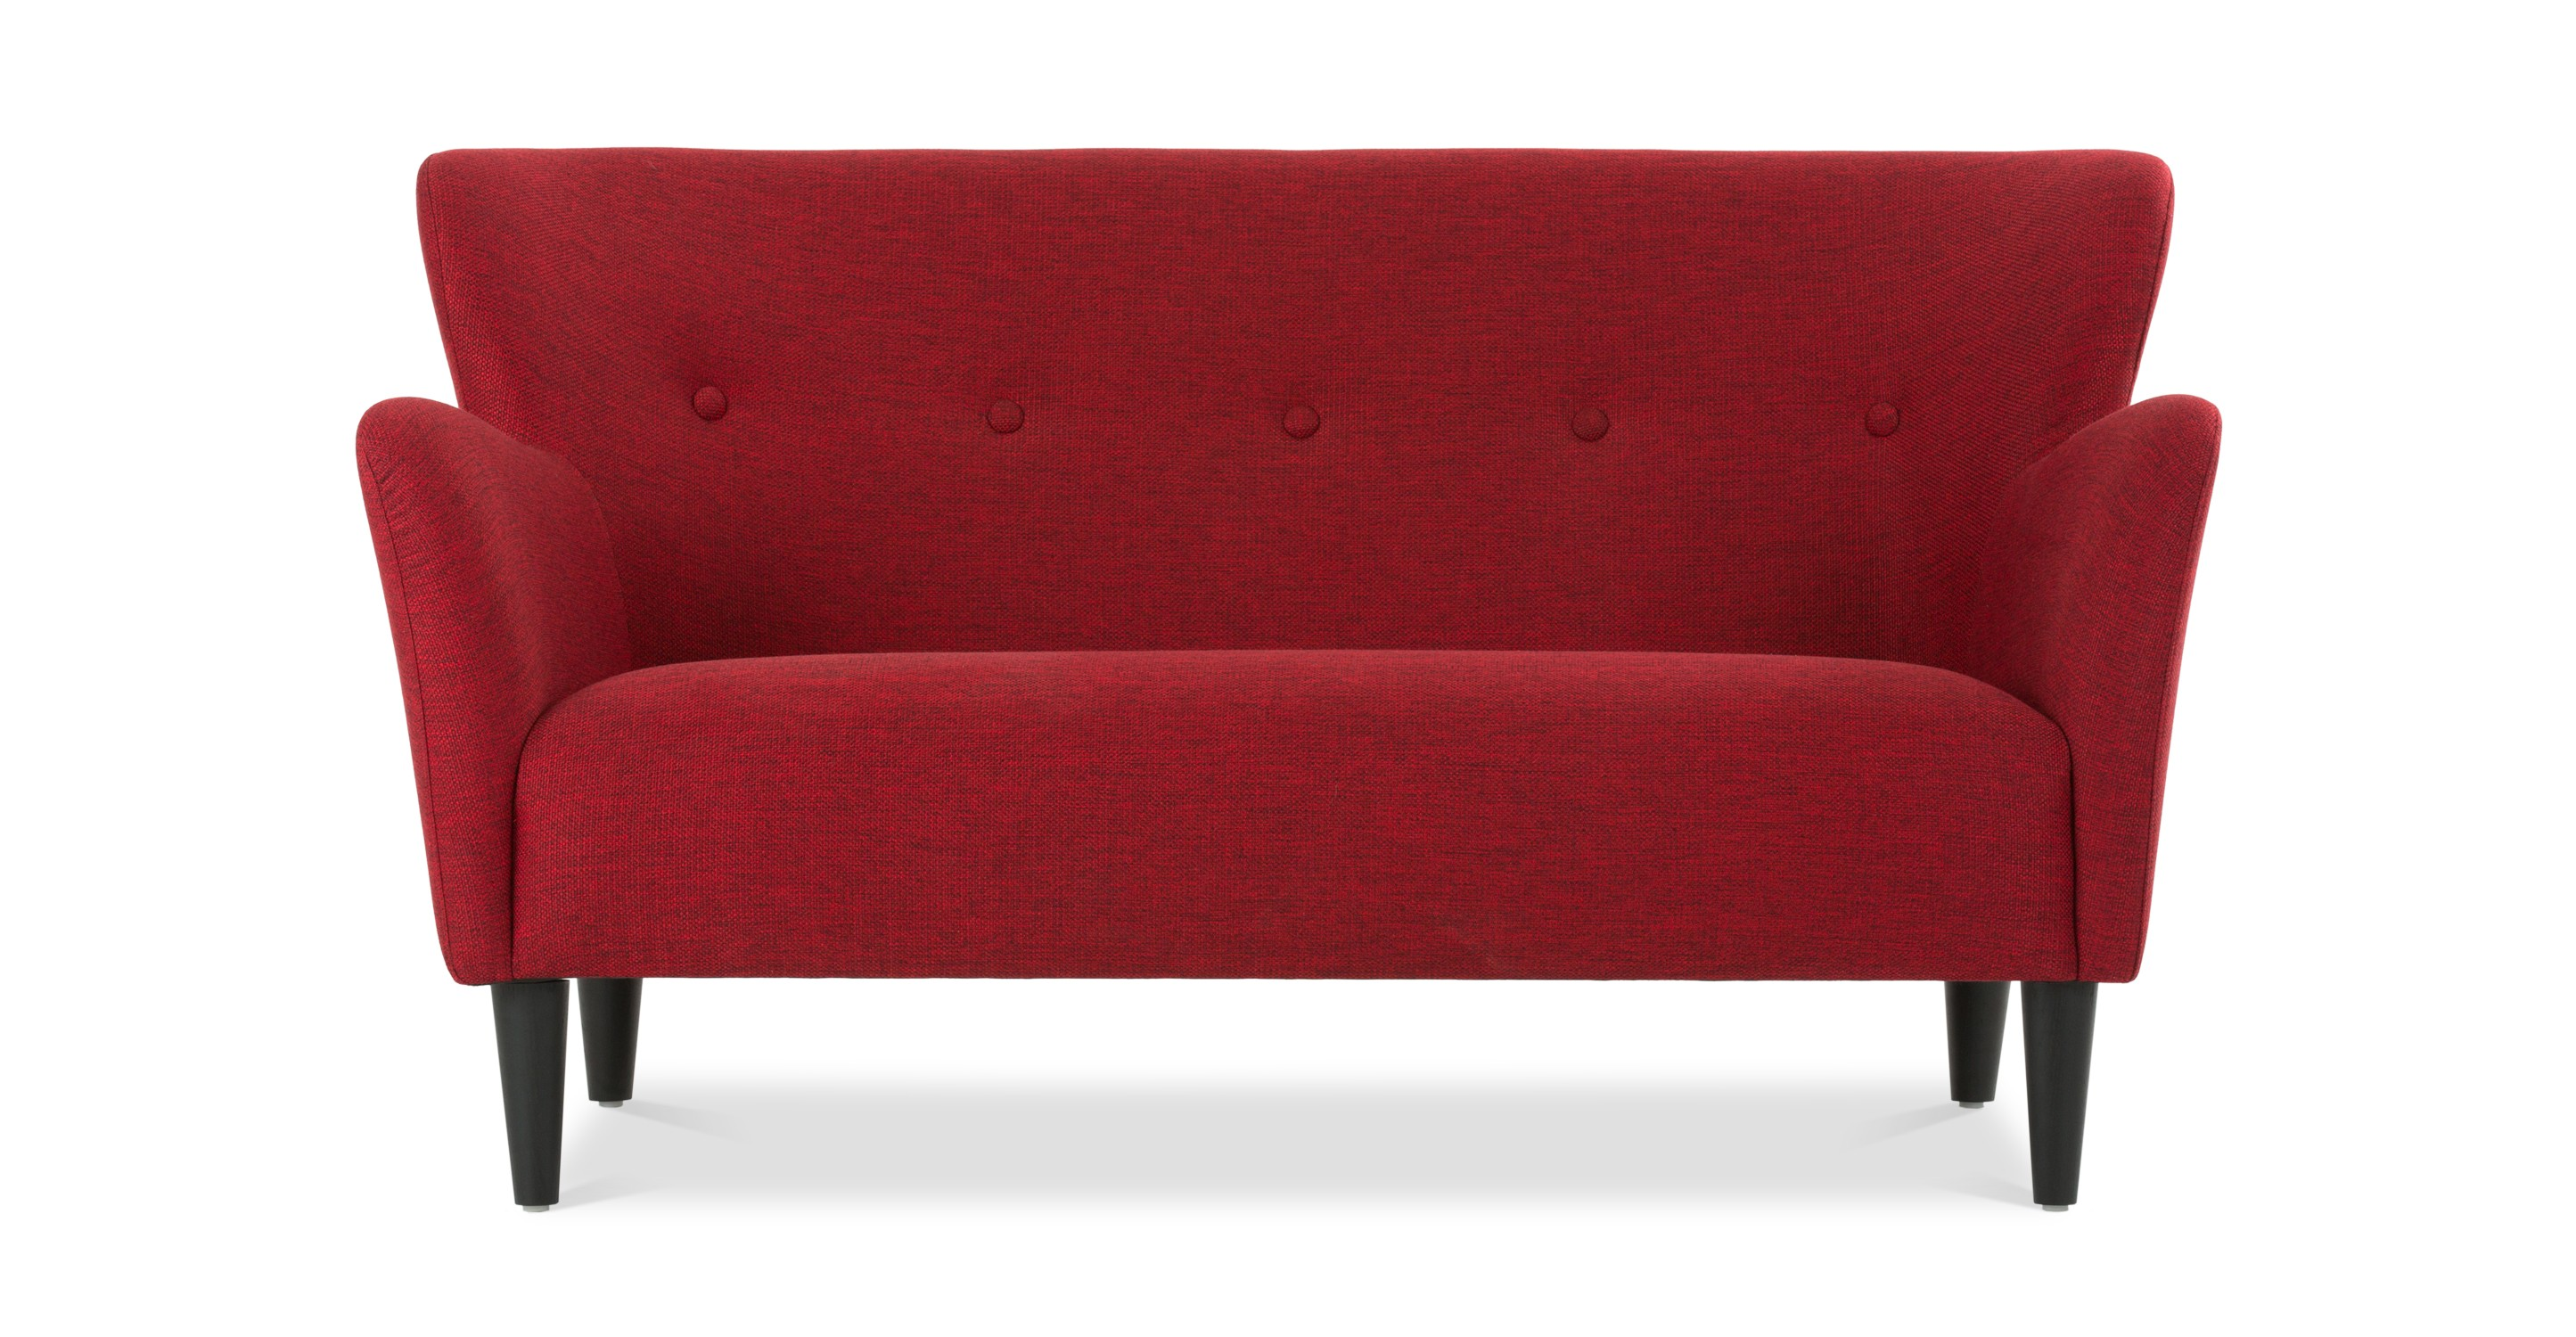 Happy picasso red loveseat loveseats article modern mid century and scandinavian furniture Red sofas and loveseats